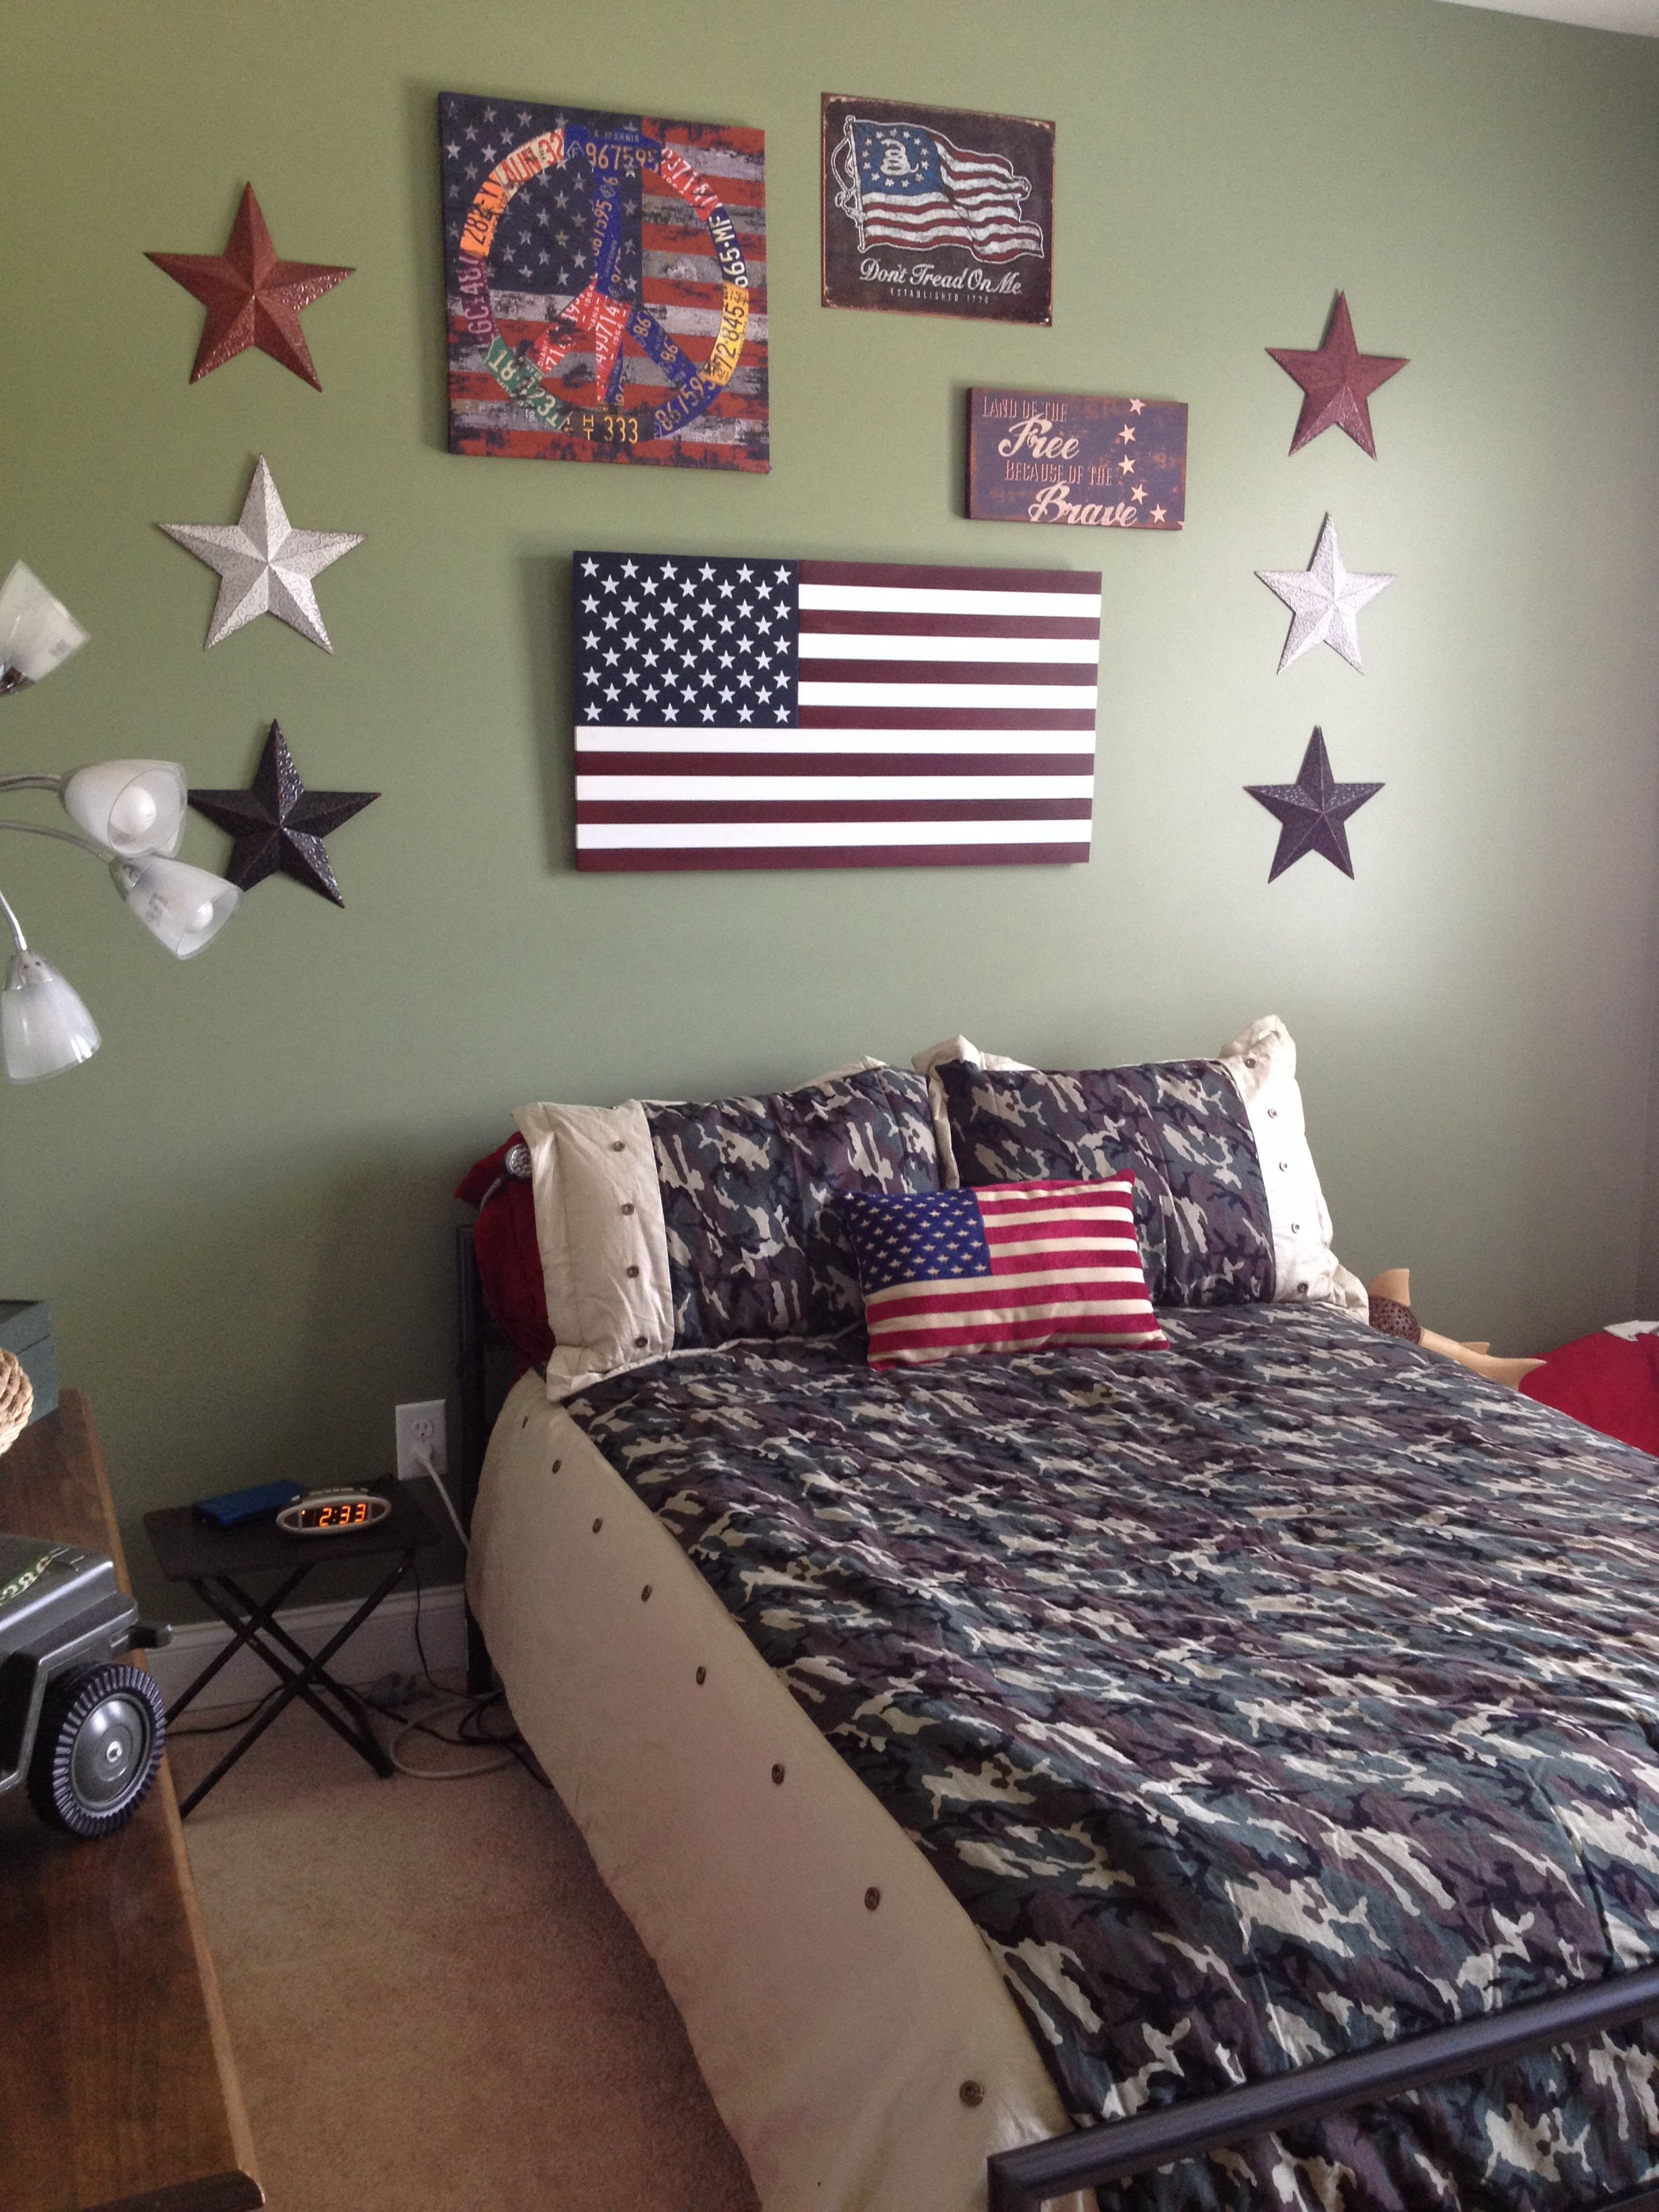 Military Themed roomMilitary Themed room   Decor   Pinterest   Themed rooms  Room and  . Marine Corps Themed Room. Home Design Ideas